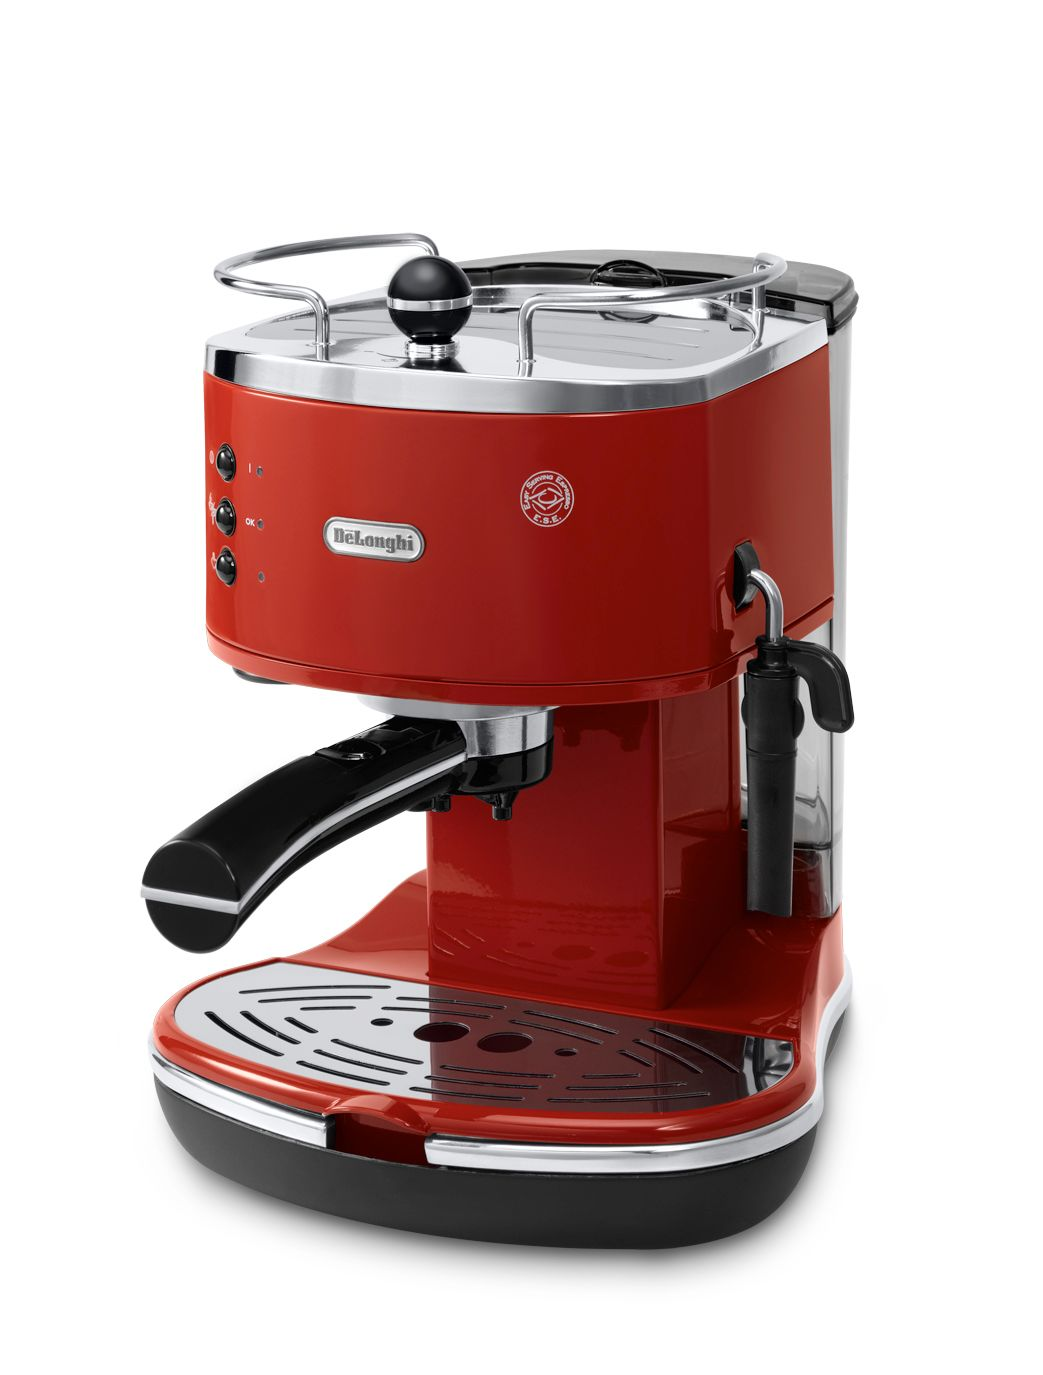 ECO310.R Red Icona Pump Espresso Coffee Maker